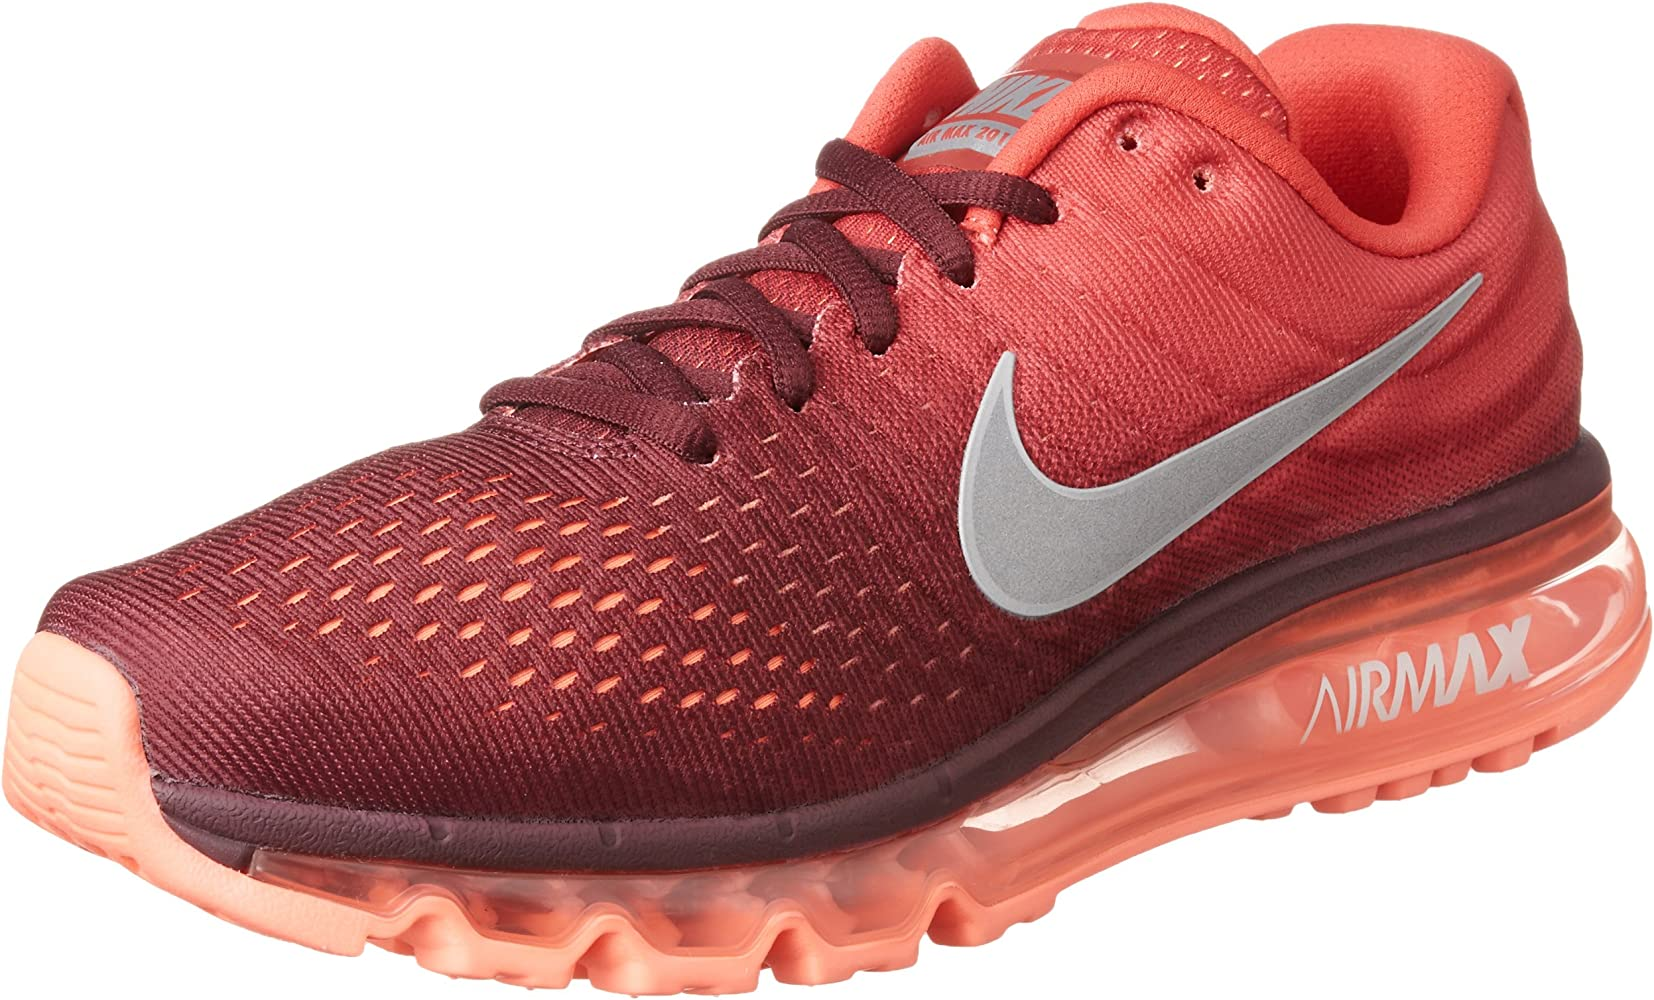 Men's Air Max 2017 Running Sneakers (MaroonWhiteGym Red Nylon) Size 10